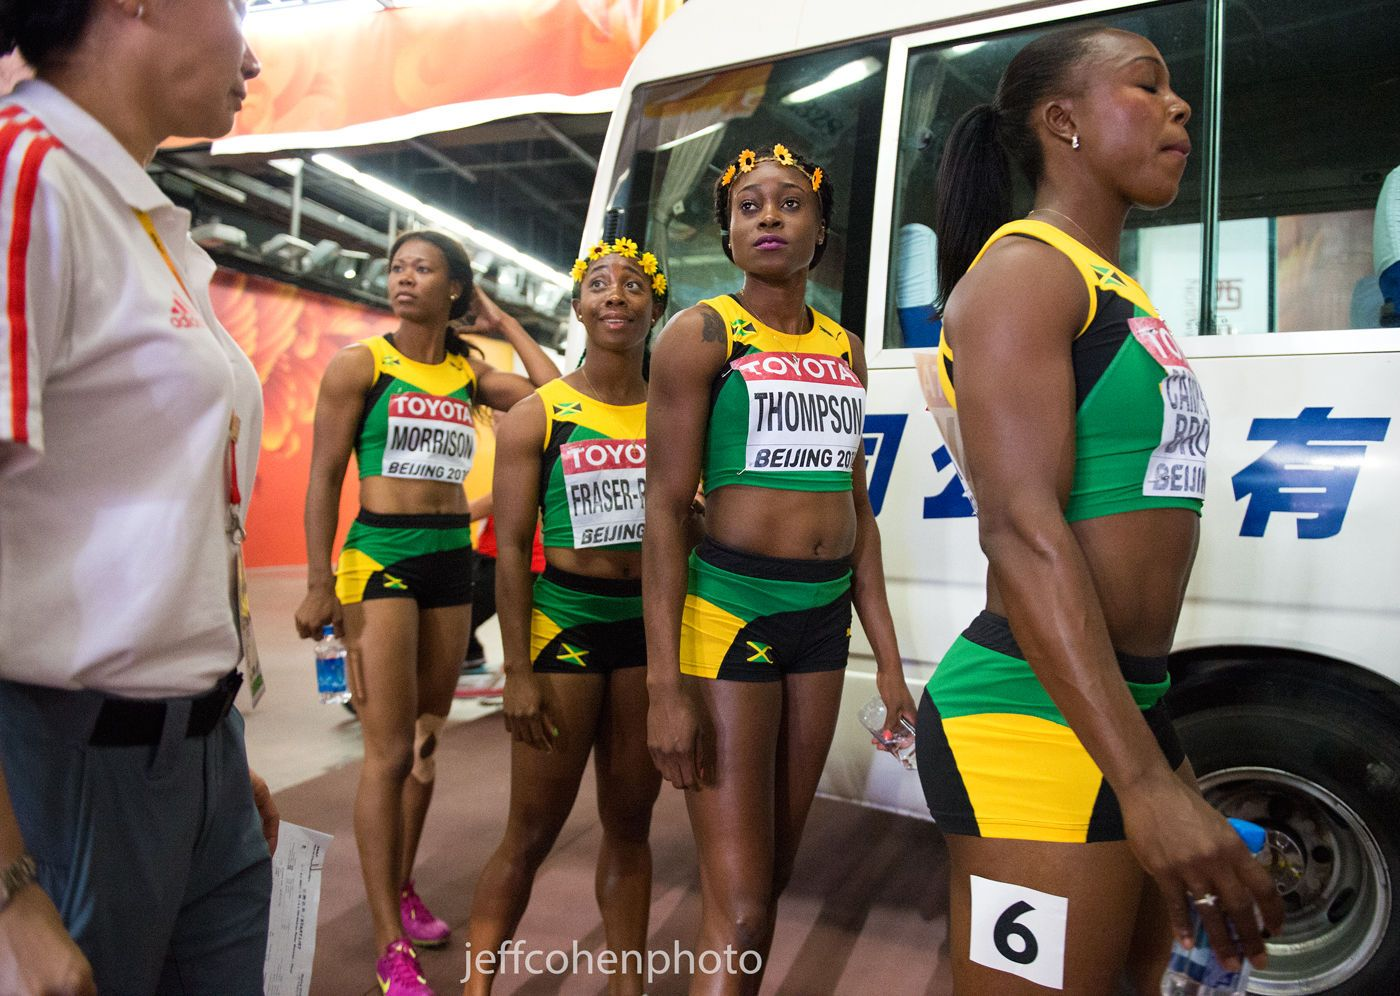 1beijing2015_night_8_4x100_jamaica_w_bus_jeff_cohen_photo_31873_web.jpg